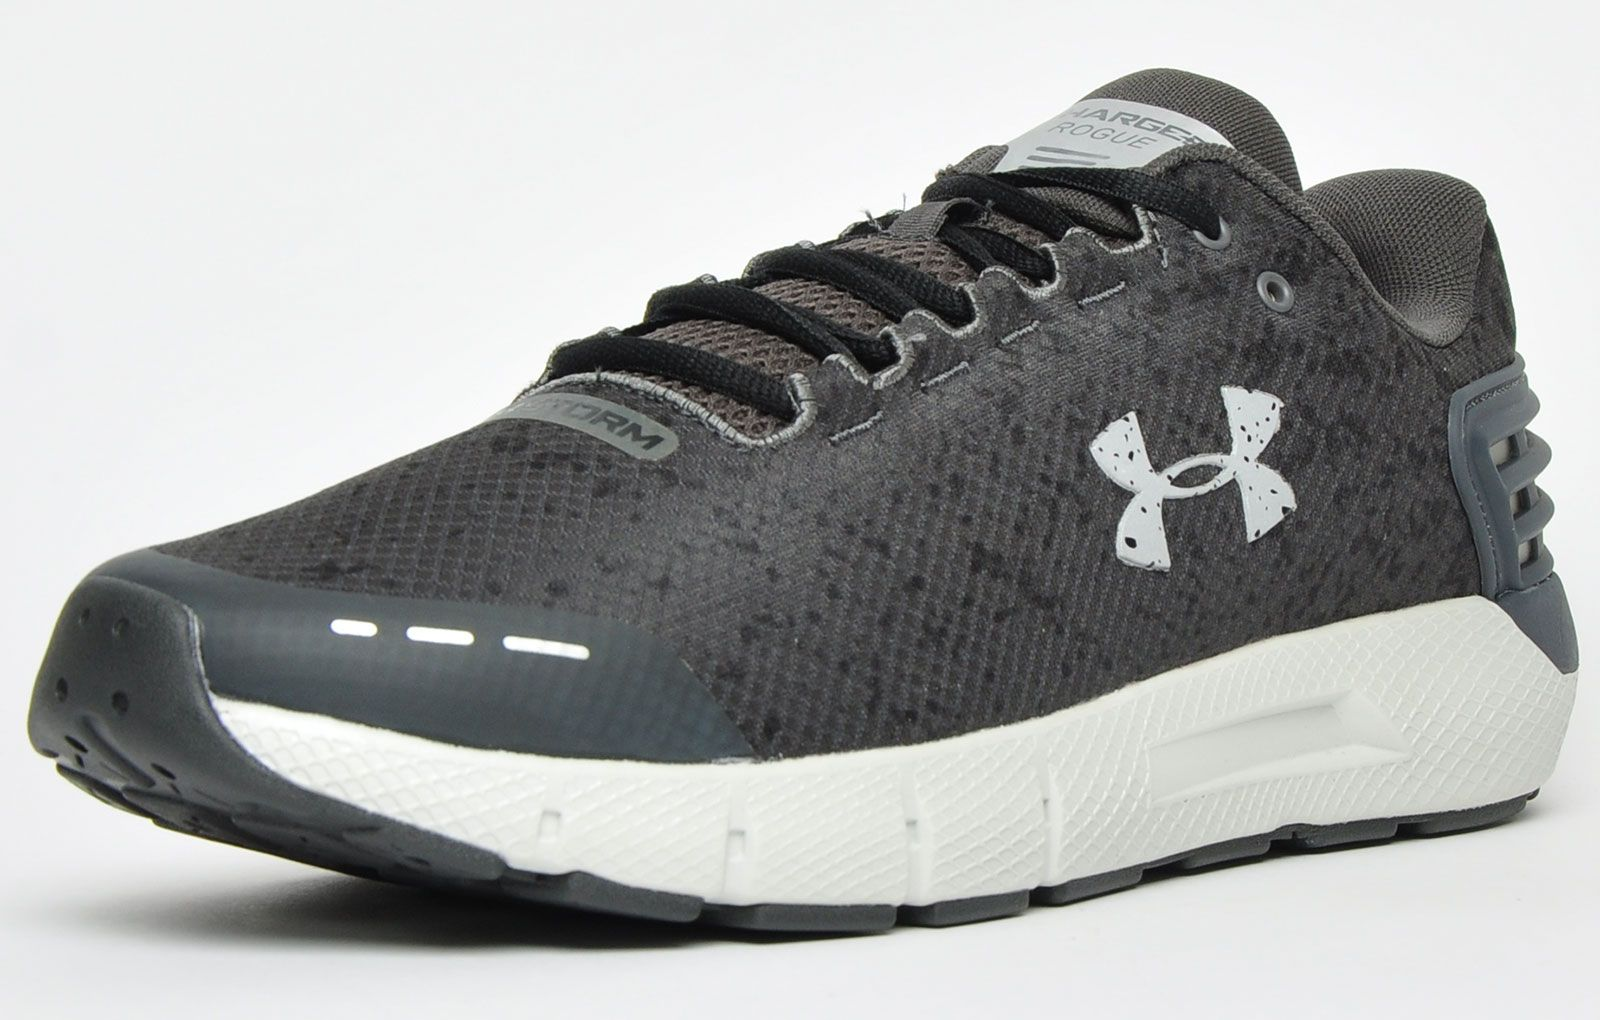 Under Armour Charged Rogue Storm Mens